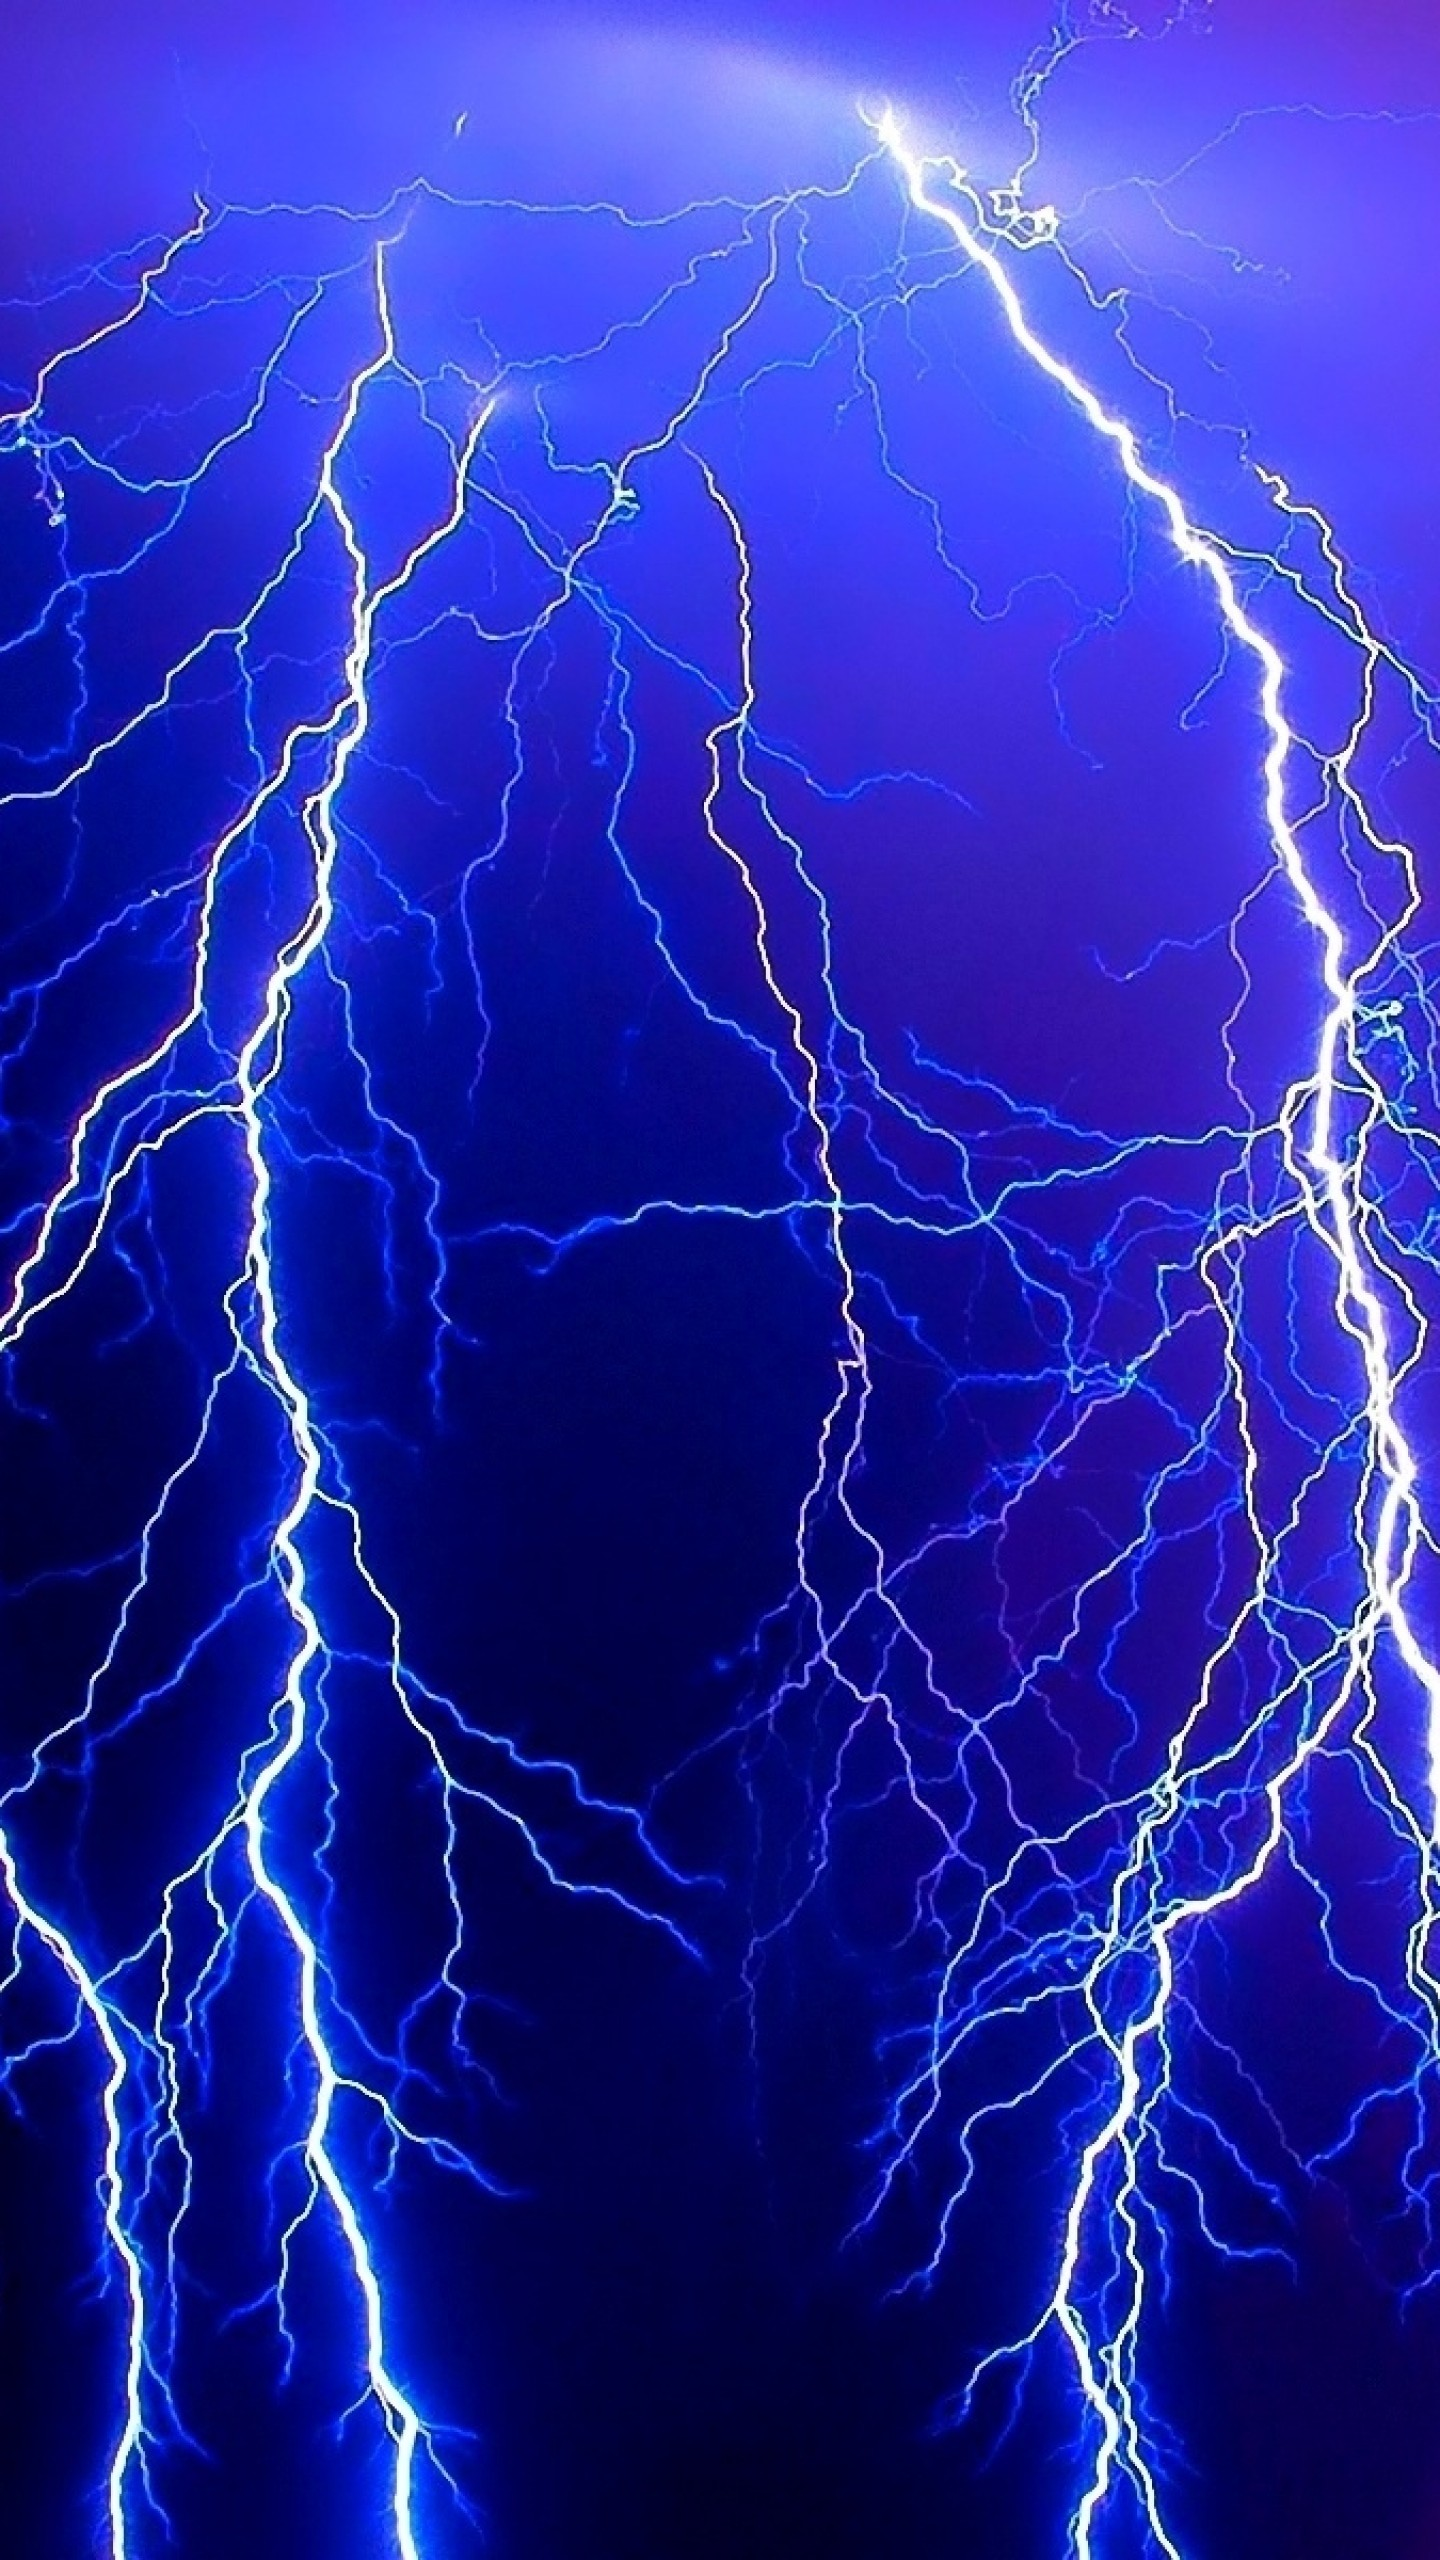 1440x2560 Preview wallpaper lightning, electricity, category, elements, danger,  night, lines,